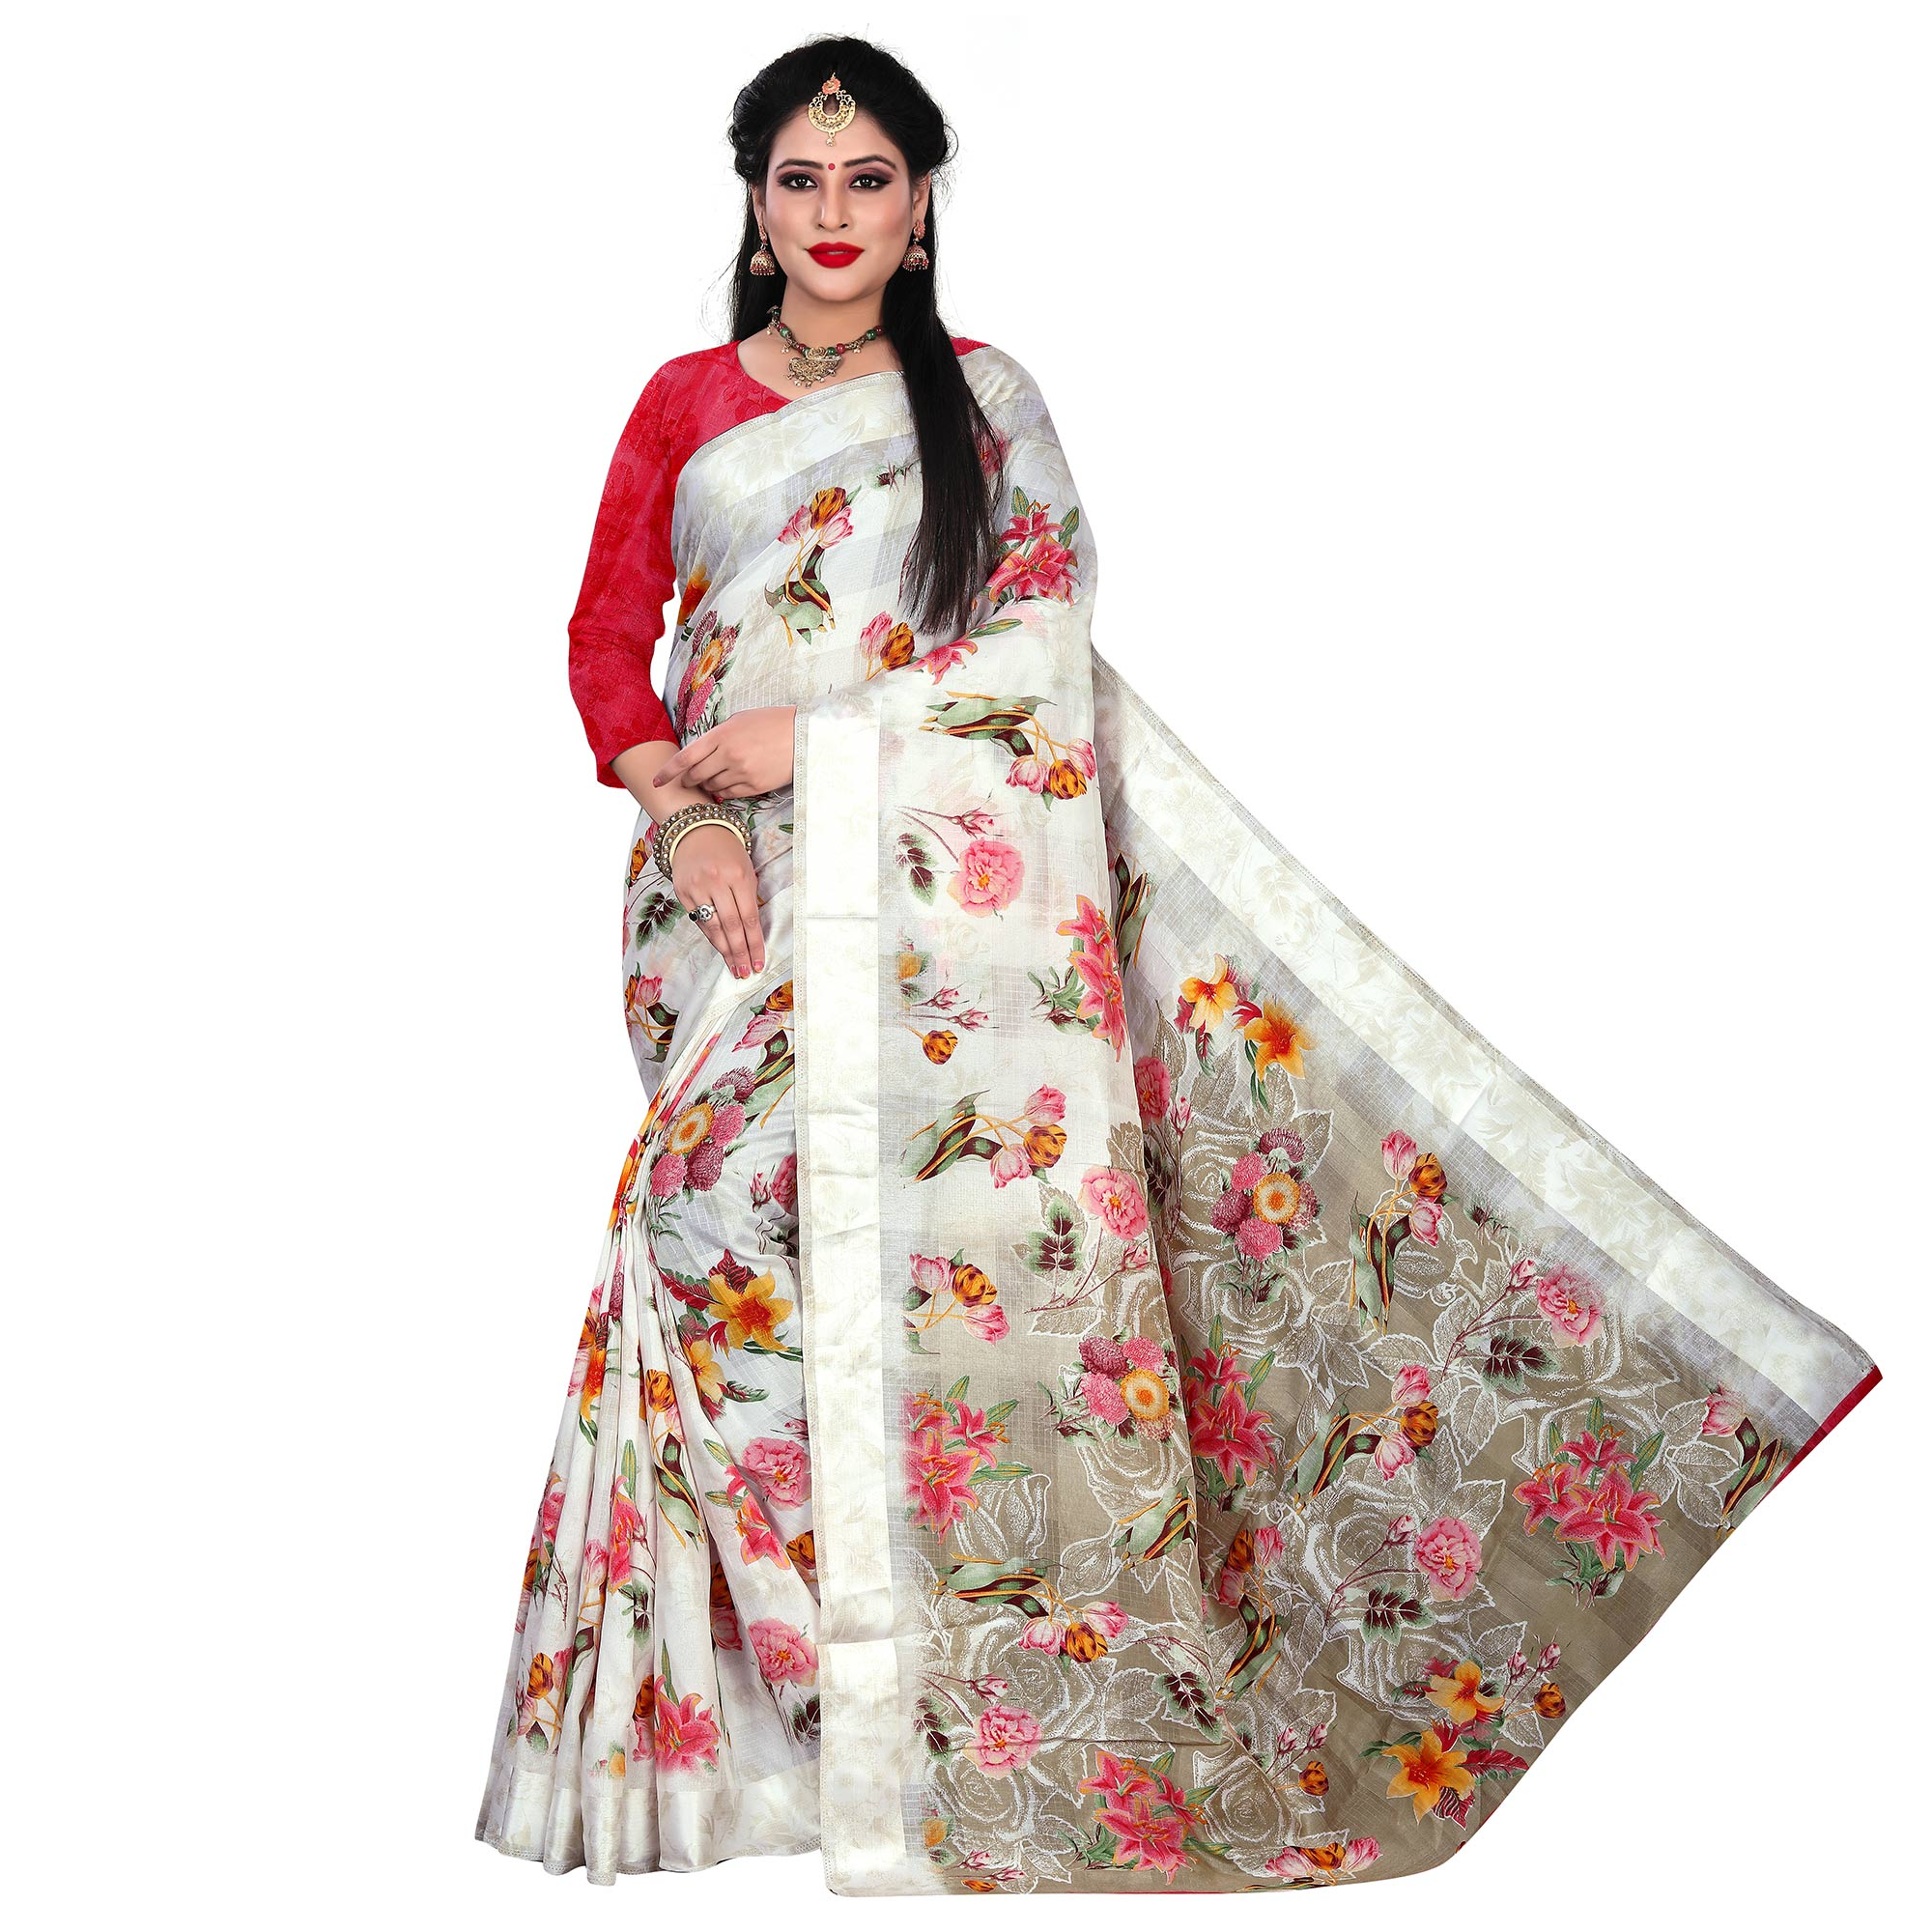 Refreshing White-Pink Colored Casual Floral Printed Linen Saree